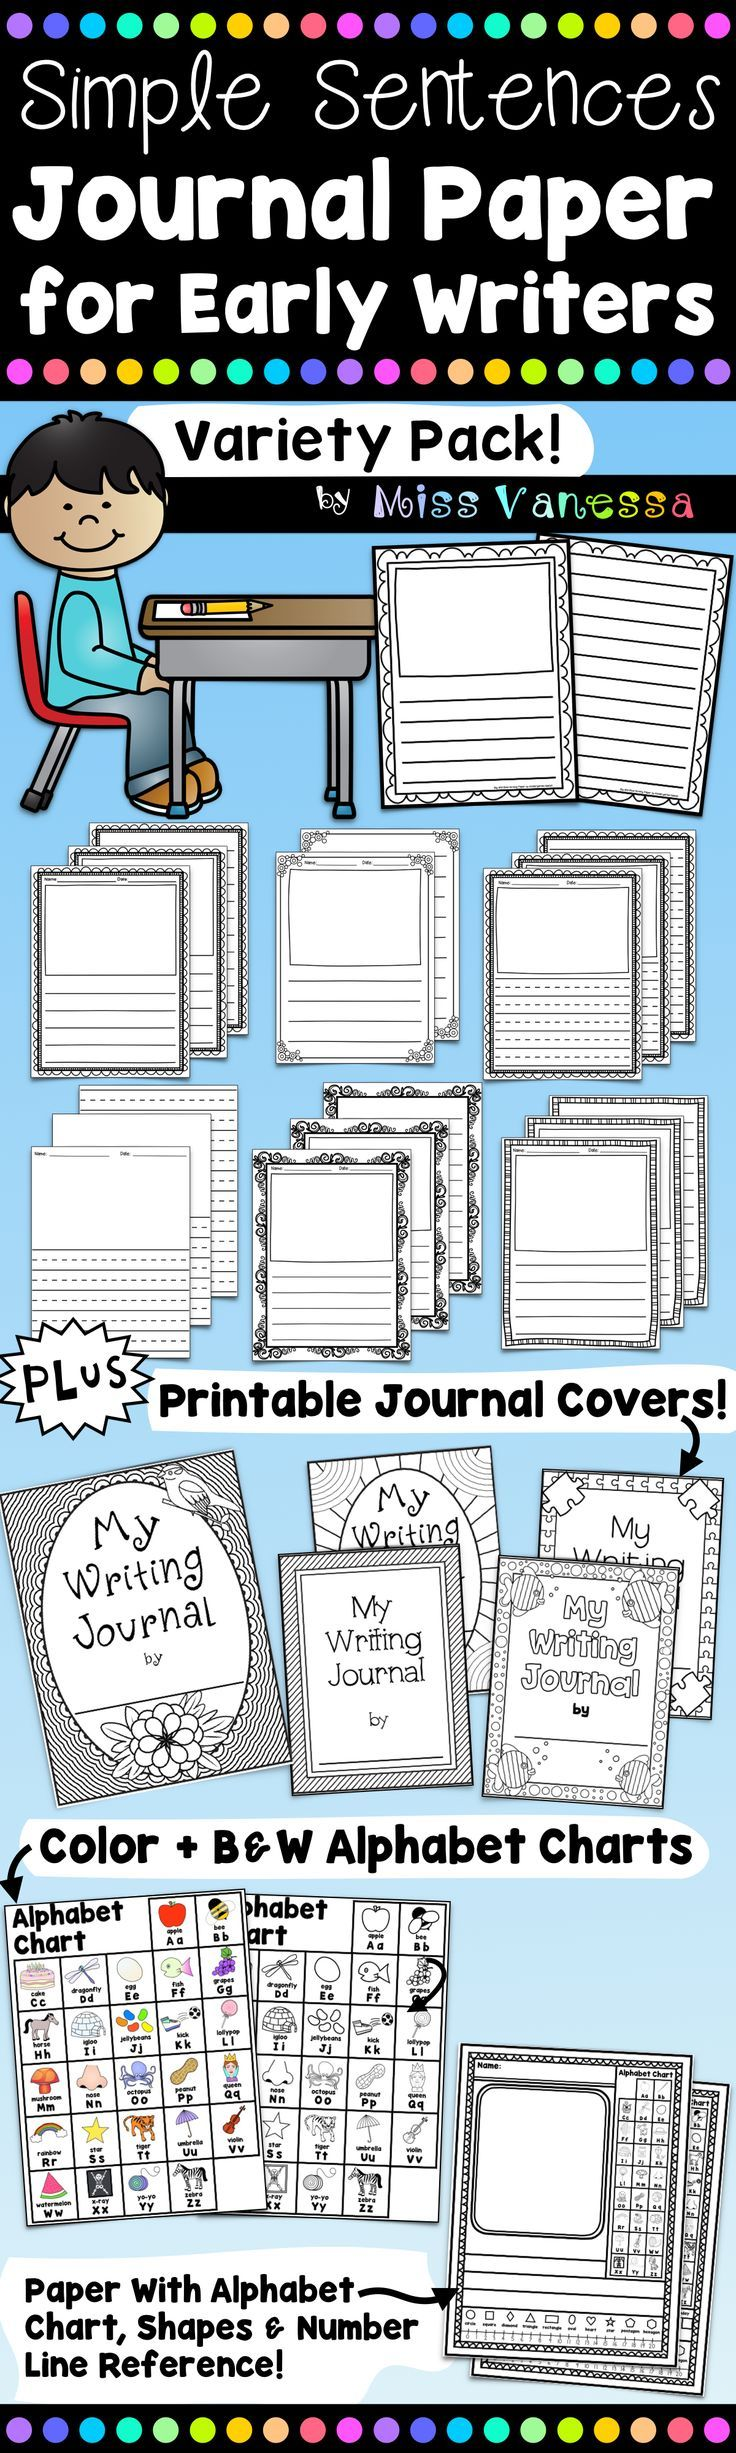 Color lines online strip game - Journal Paper For Early Writers Perfect For Kids In Prek Kindergarten And Students